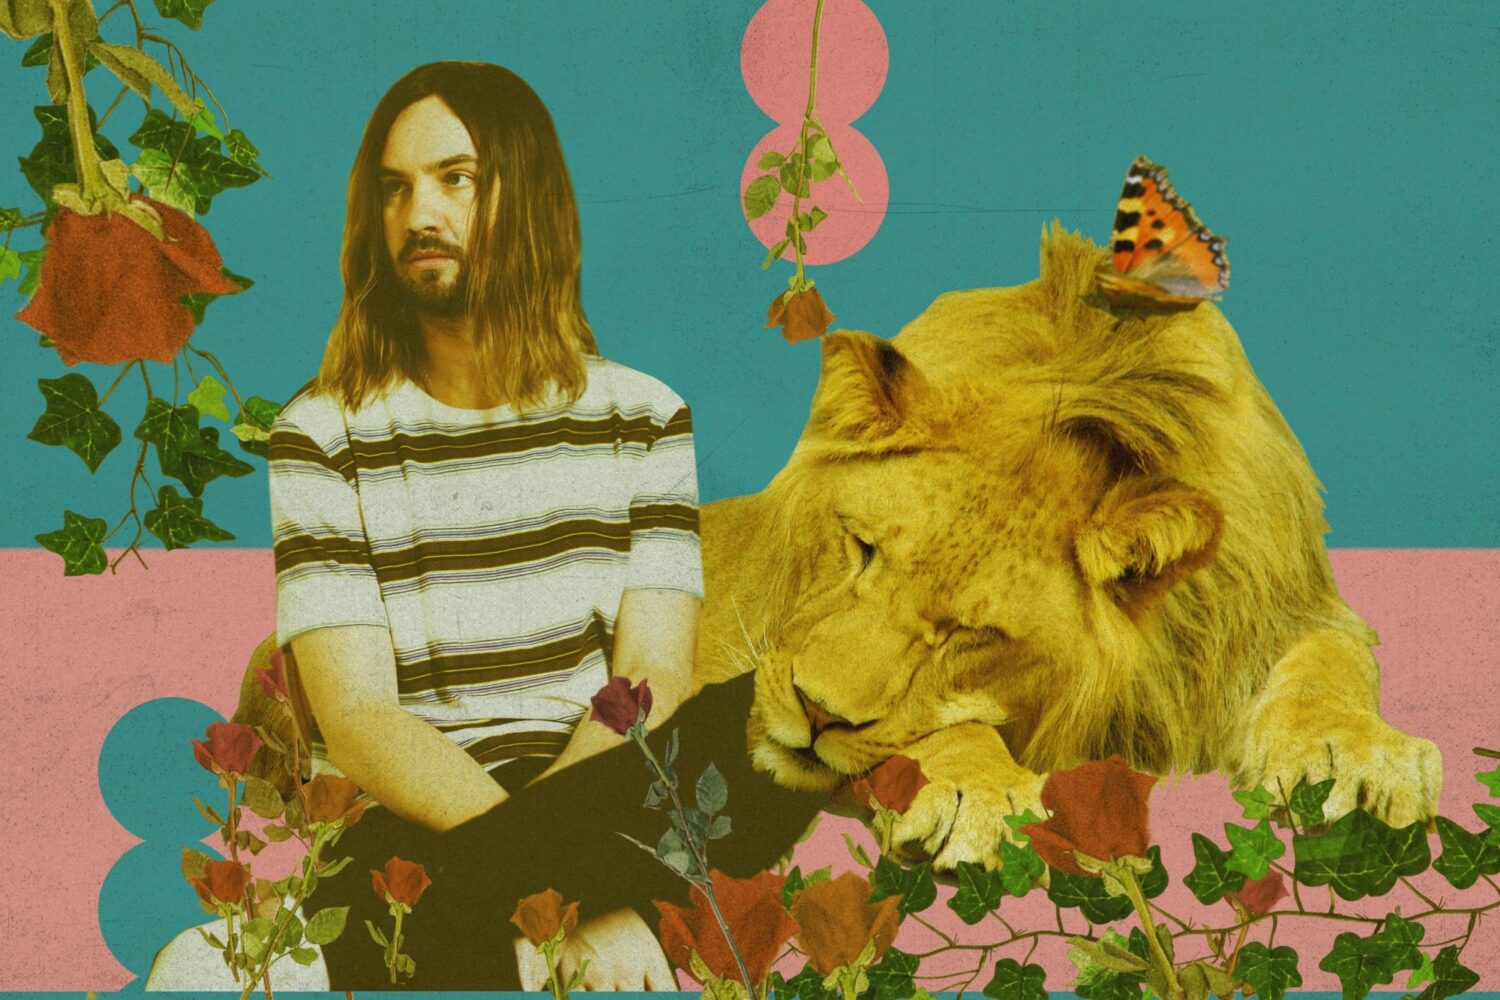 Tame Impala graces the cover of DIY's February 2020 issue!